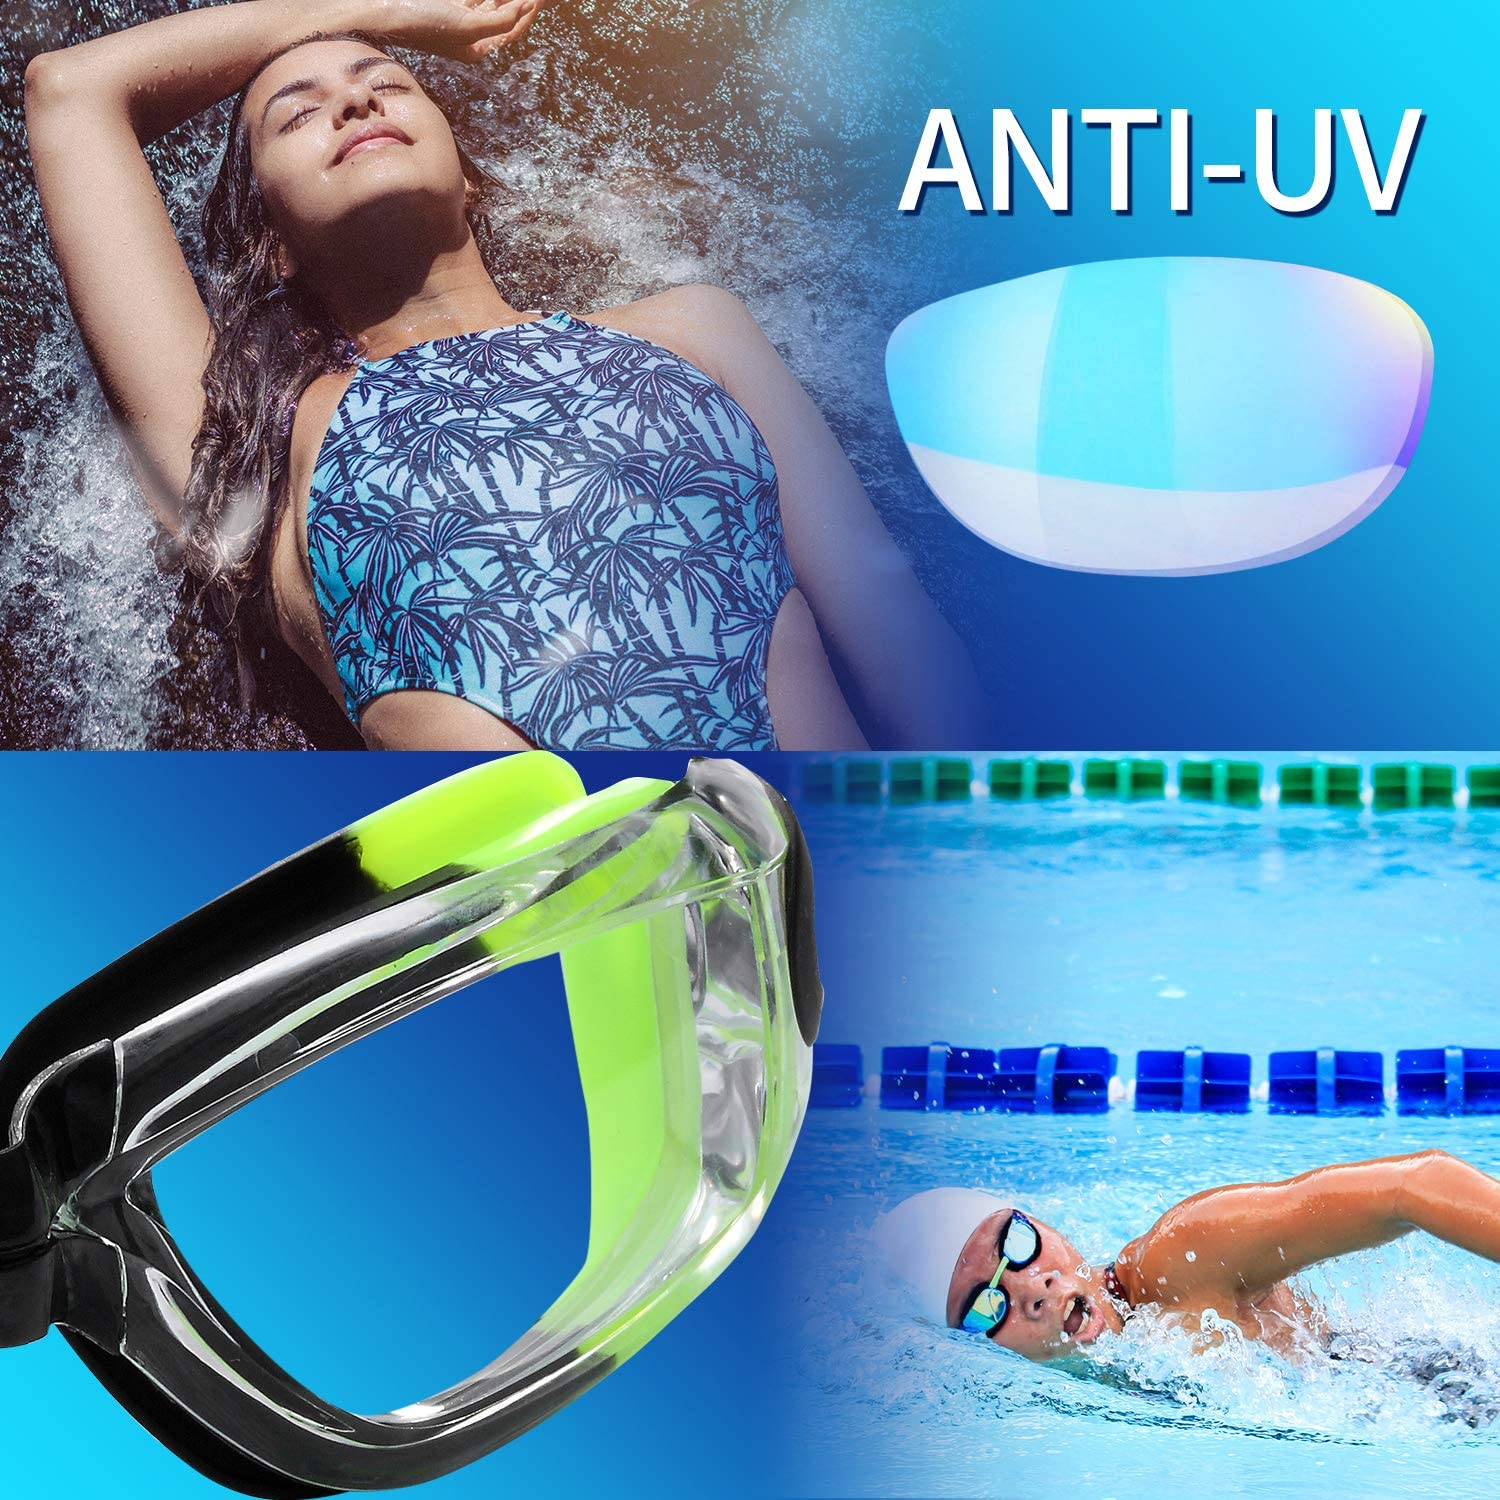 Rngeo Swim Goggles No Leaking Anti Fog UV 400 Protection Waterproof 180 Degree Triathlon Pool 2 Pack Swimming Glasses with Electroplating and Transparent Lenses for Adult Men Women Youth Kids Child